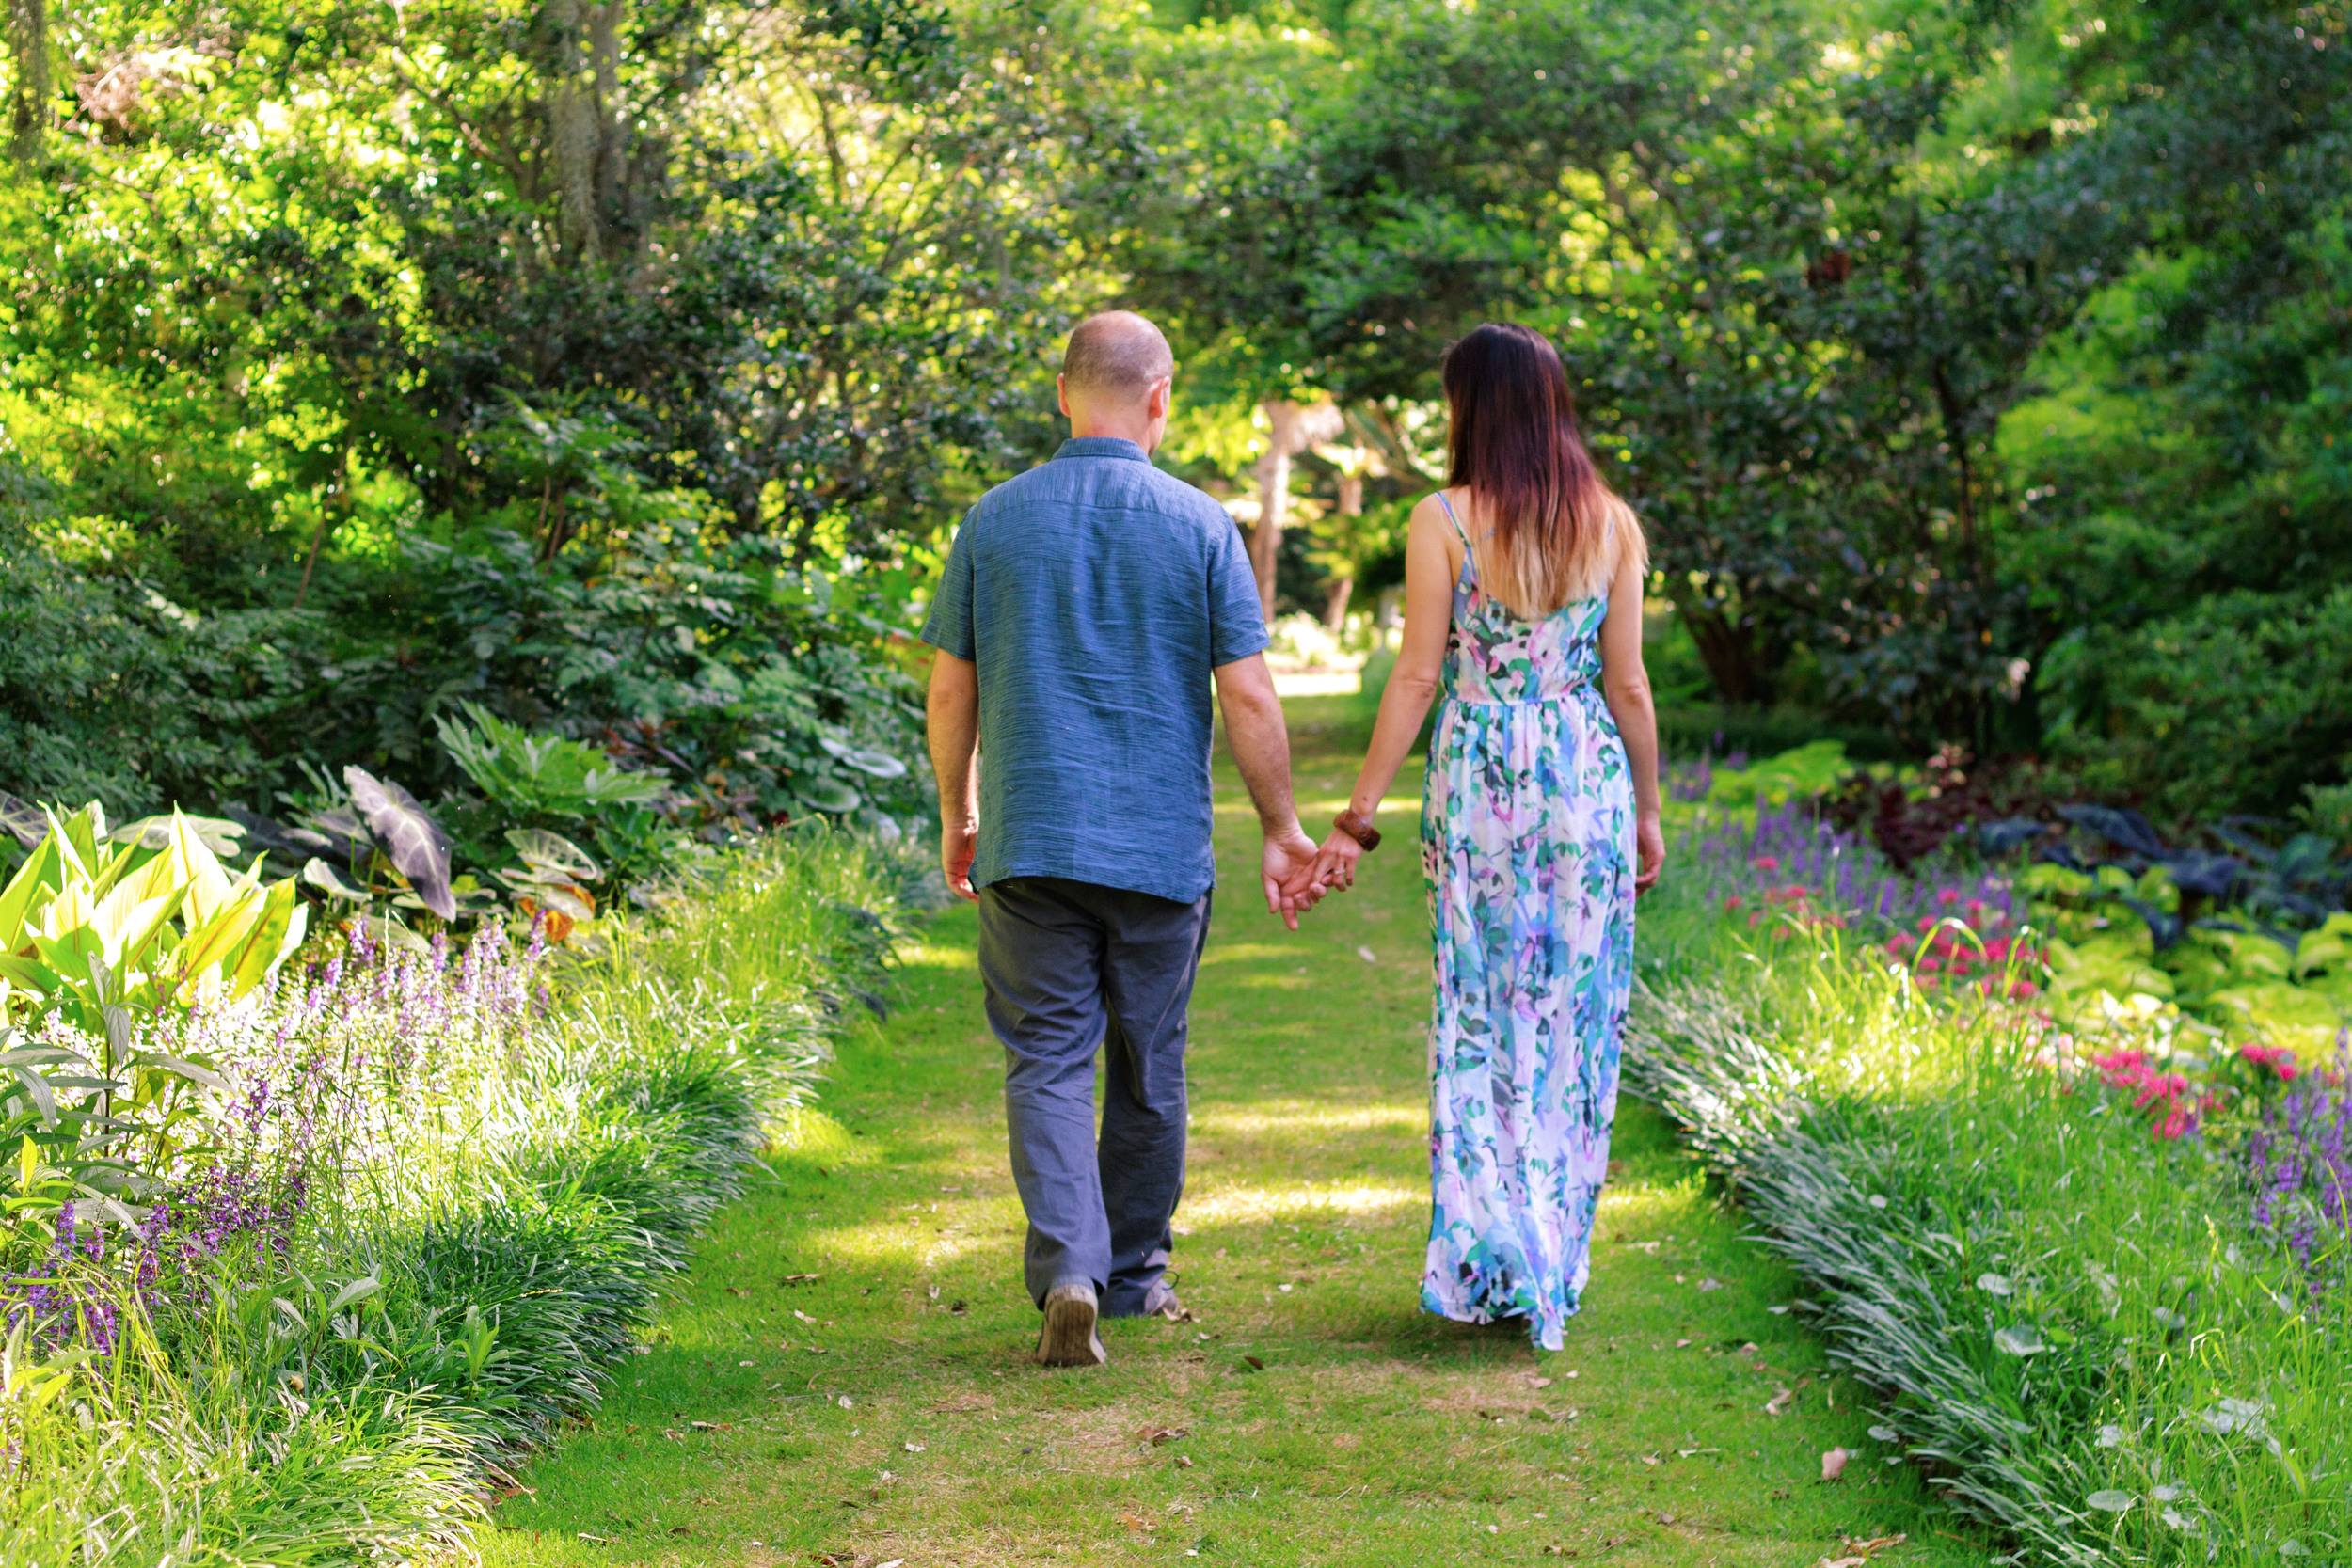 Airlie_Gardens_Engagement_Tiffany_Abruzzo_Photography